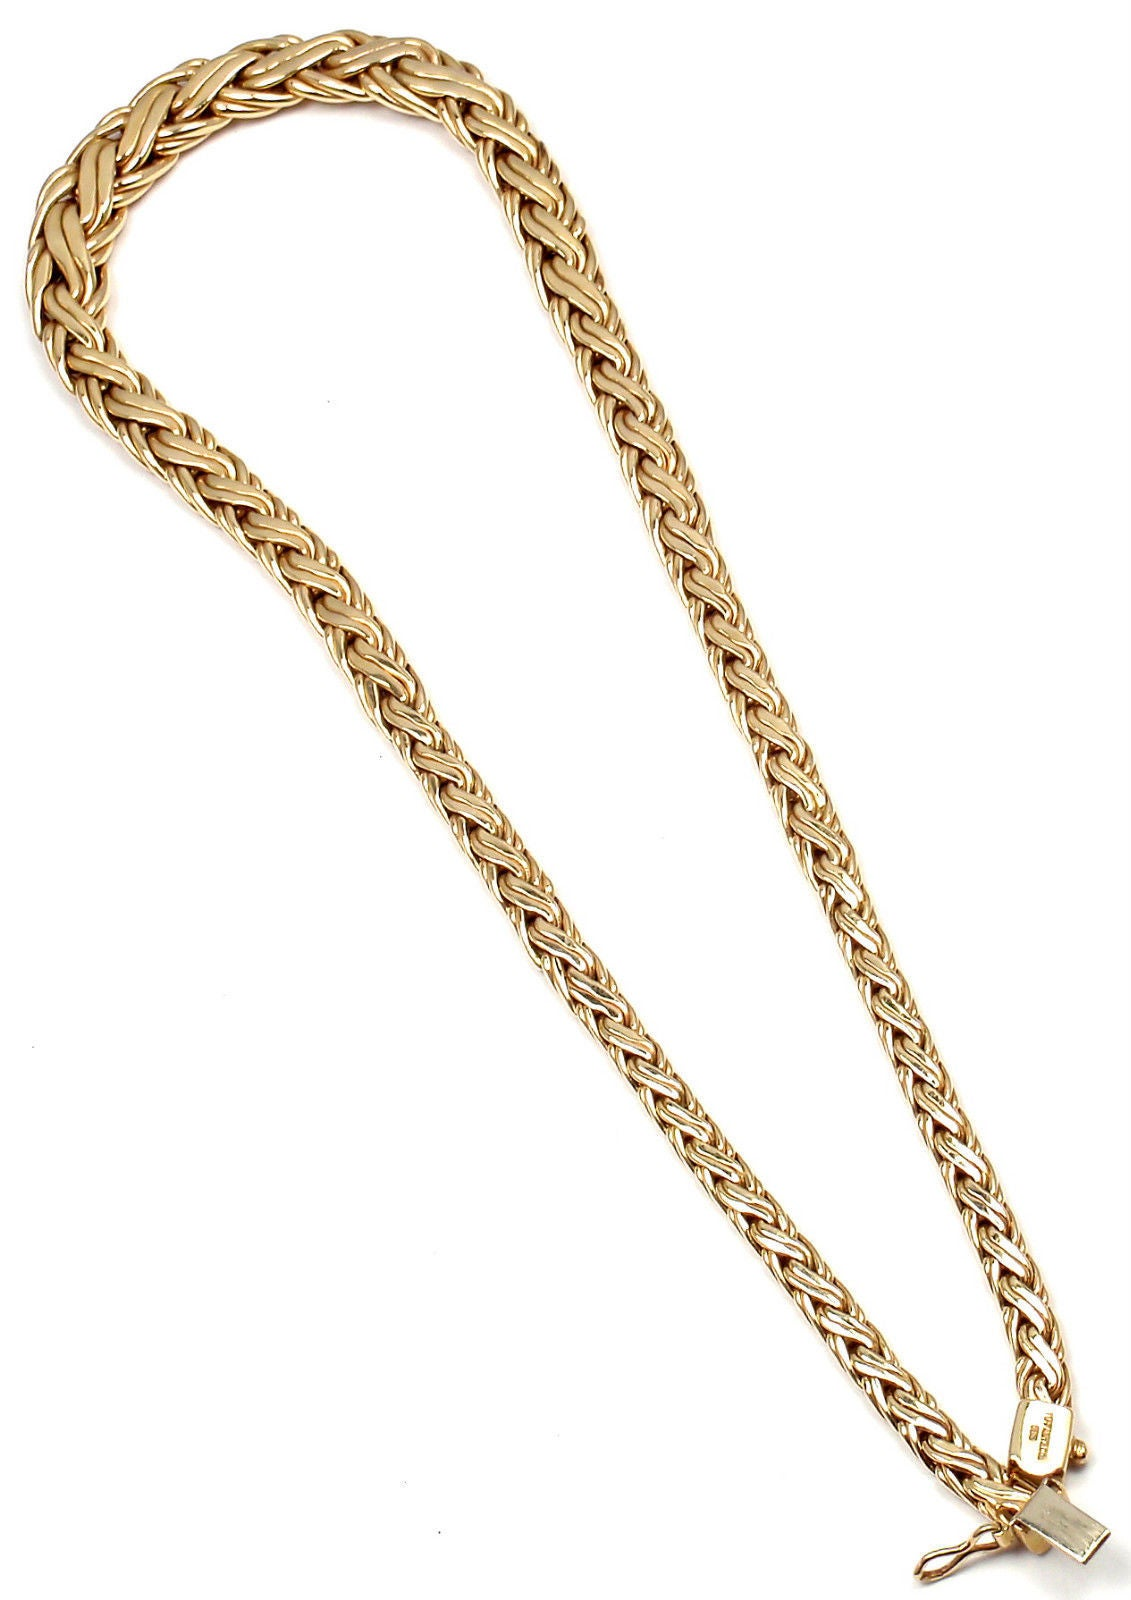 Tiffany & Co. Russian Weave Chain Link Yellow Gold Necklace 2